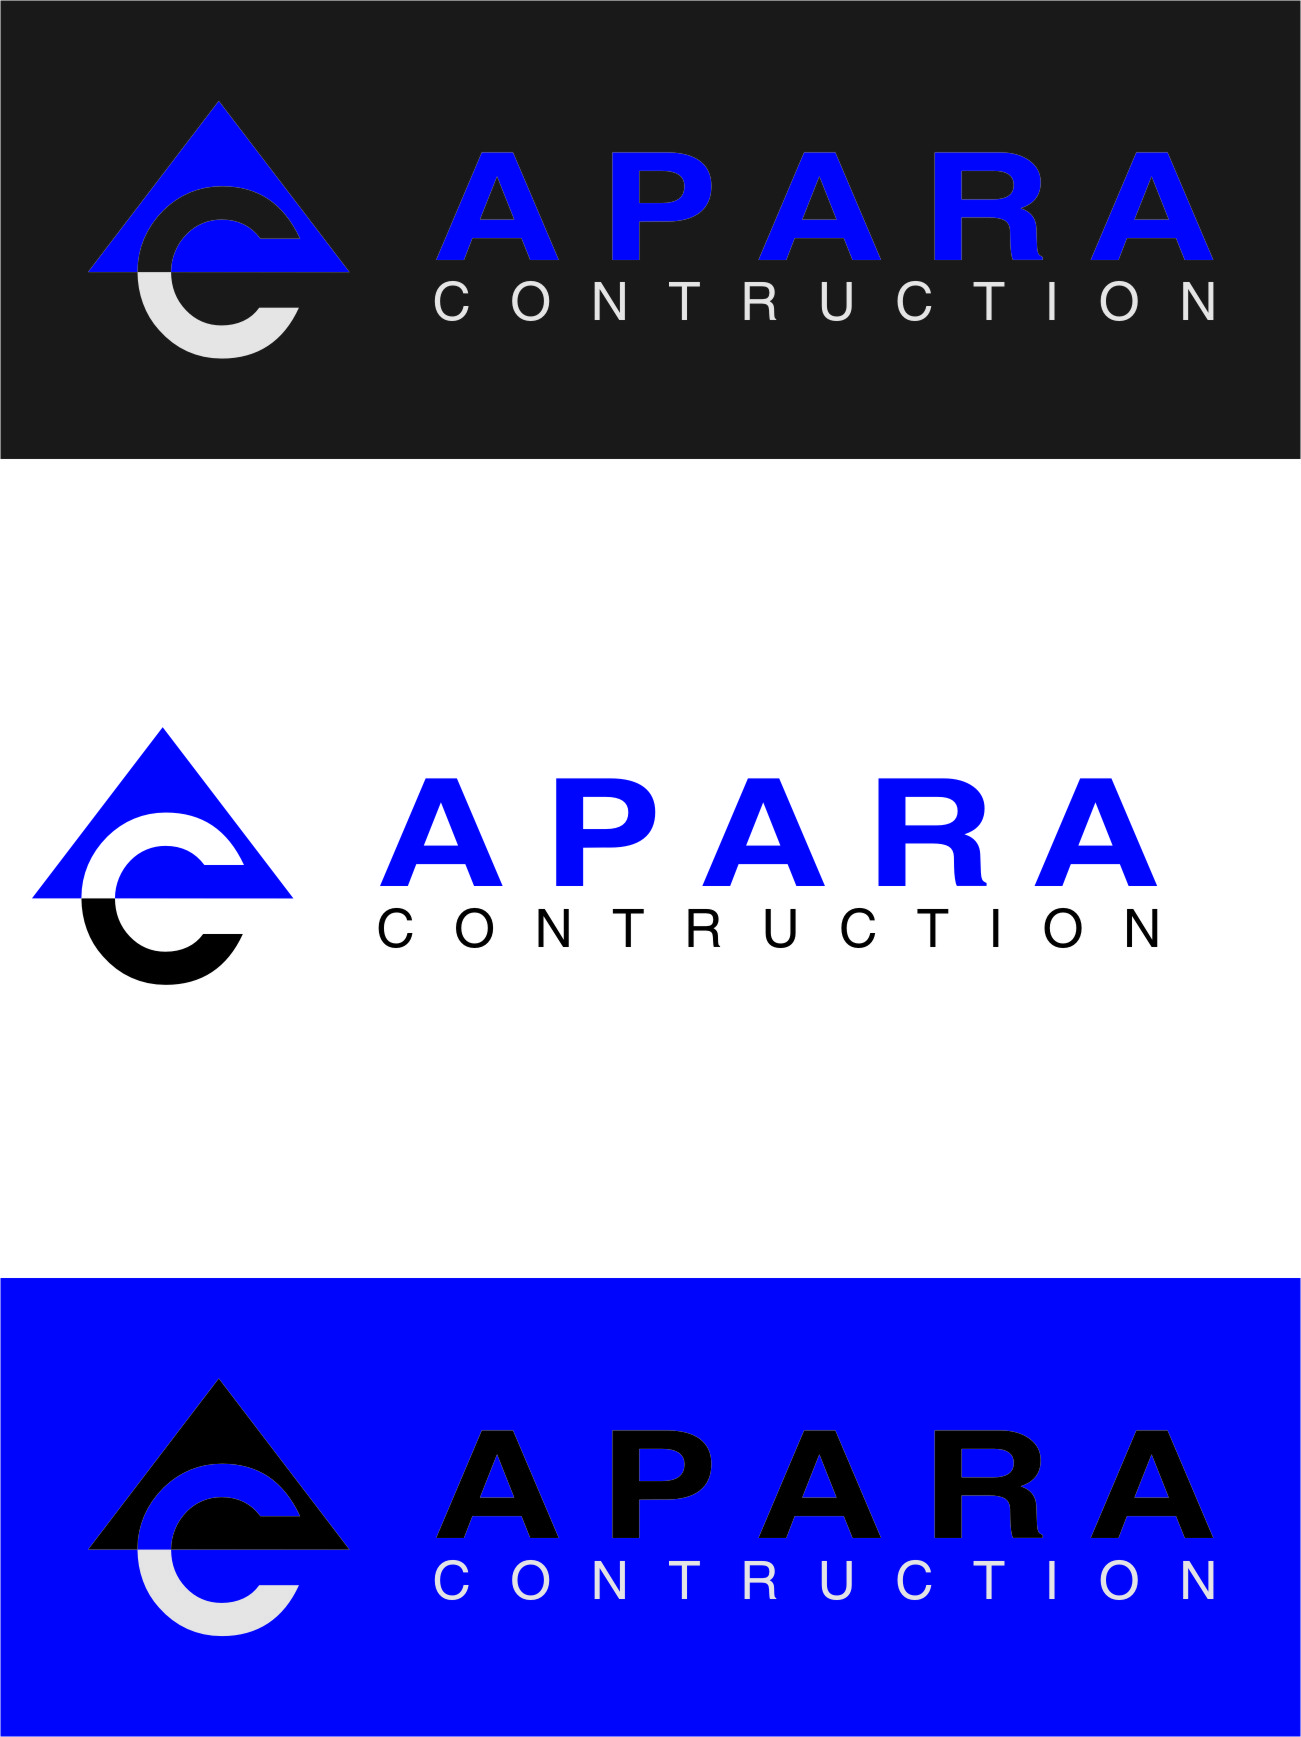 Logo Design by Ngepet_art - Entry No. 198 in the Logo Design Contest Apara Construction Logo Design.